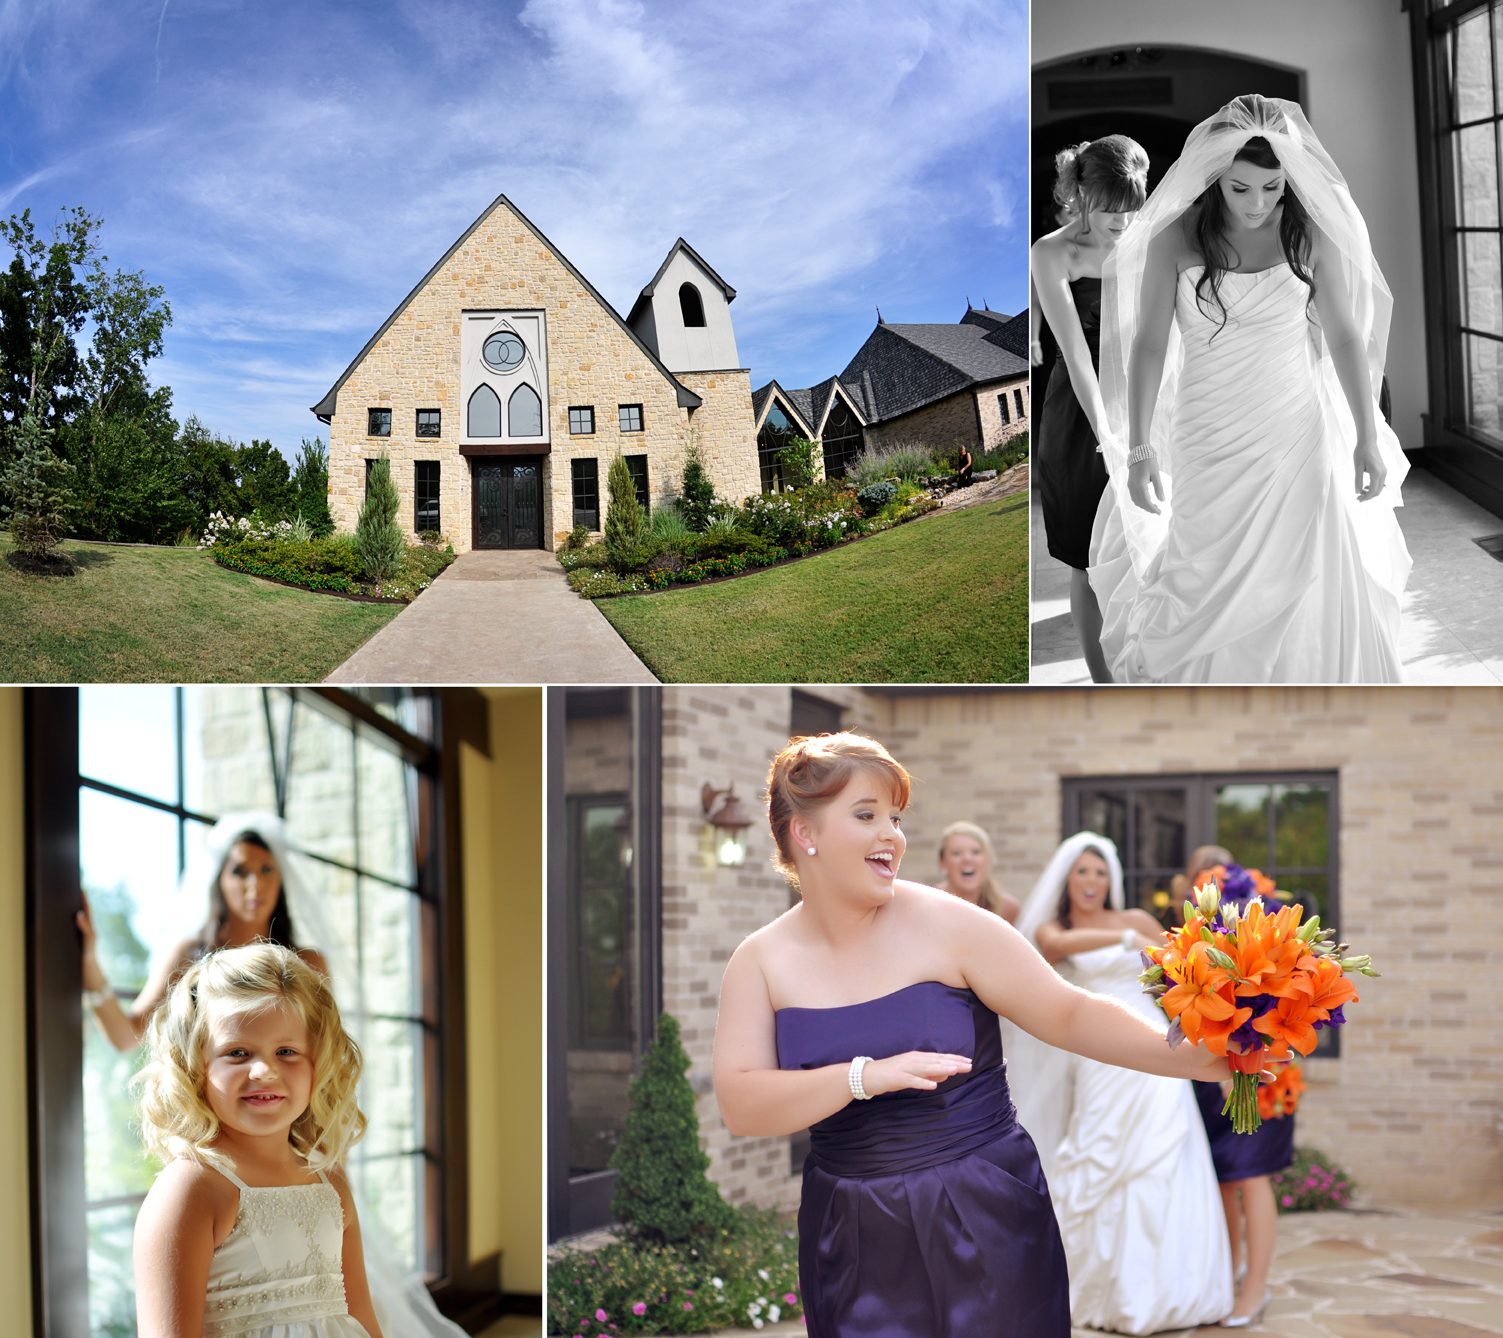 Vesica Pisces wedding with tulsa photgraphers